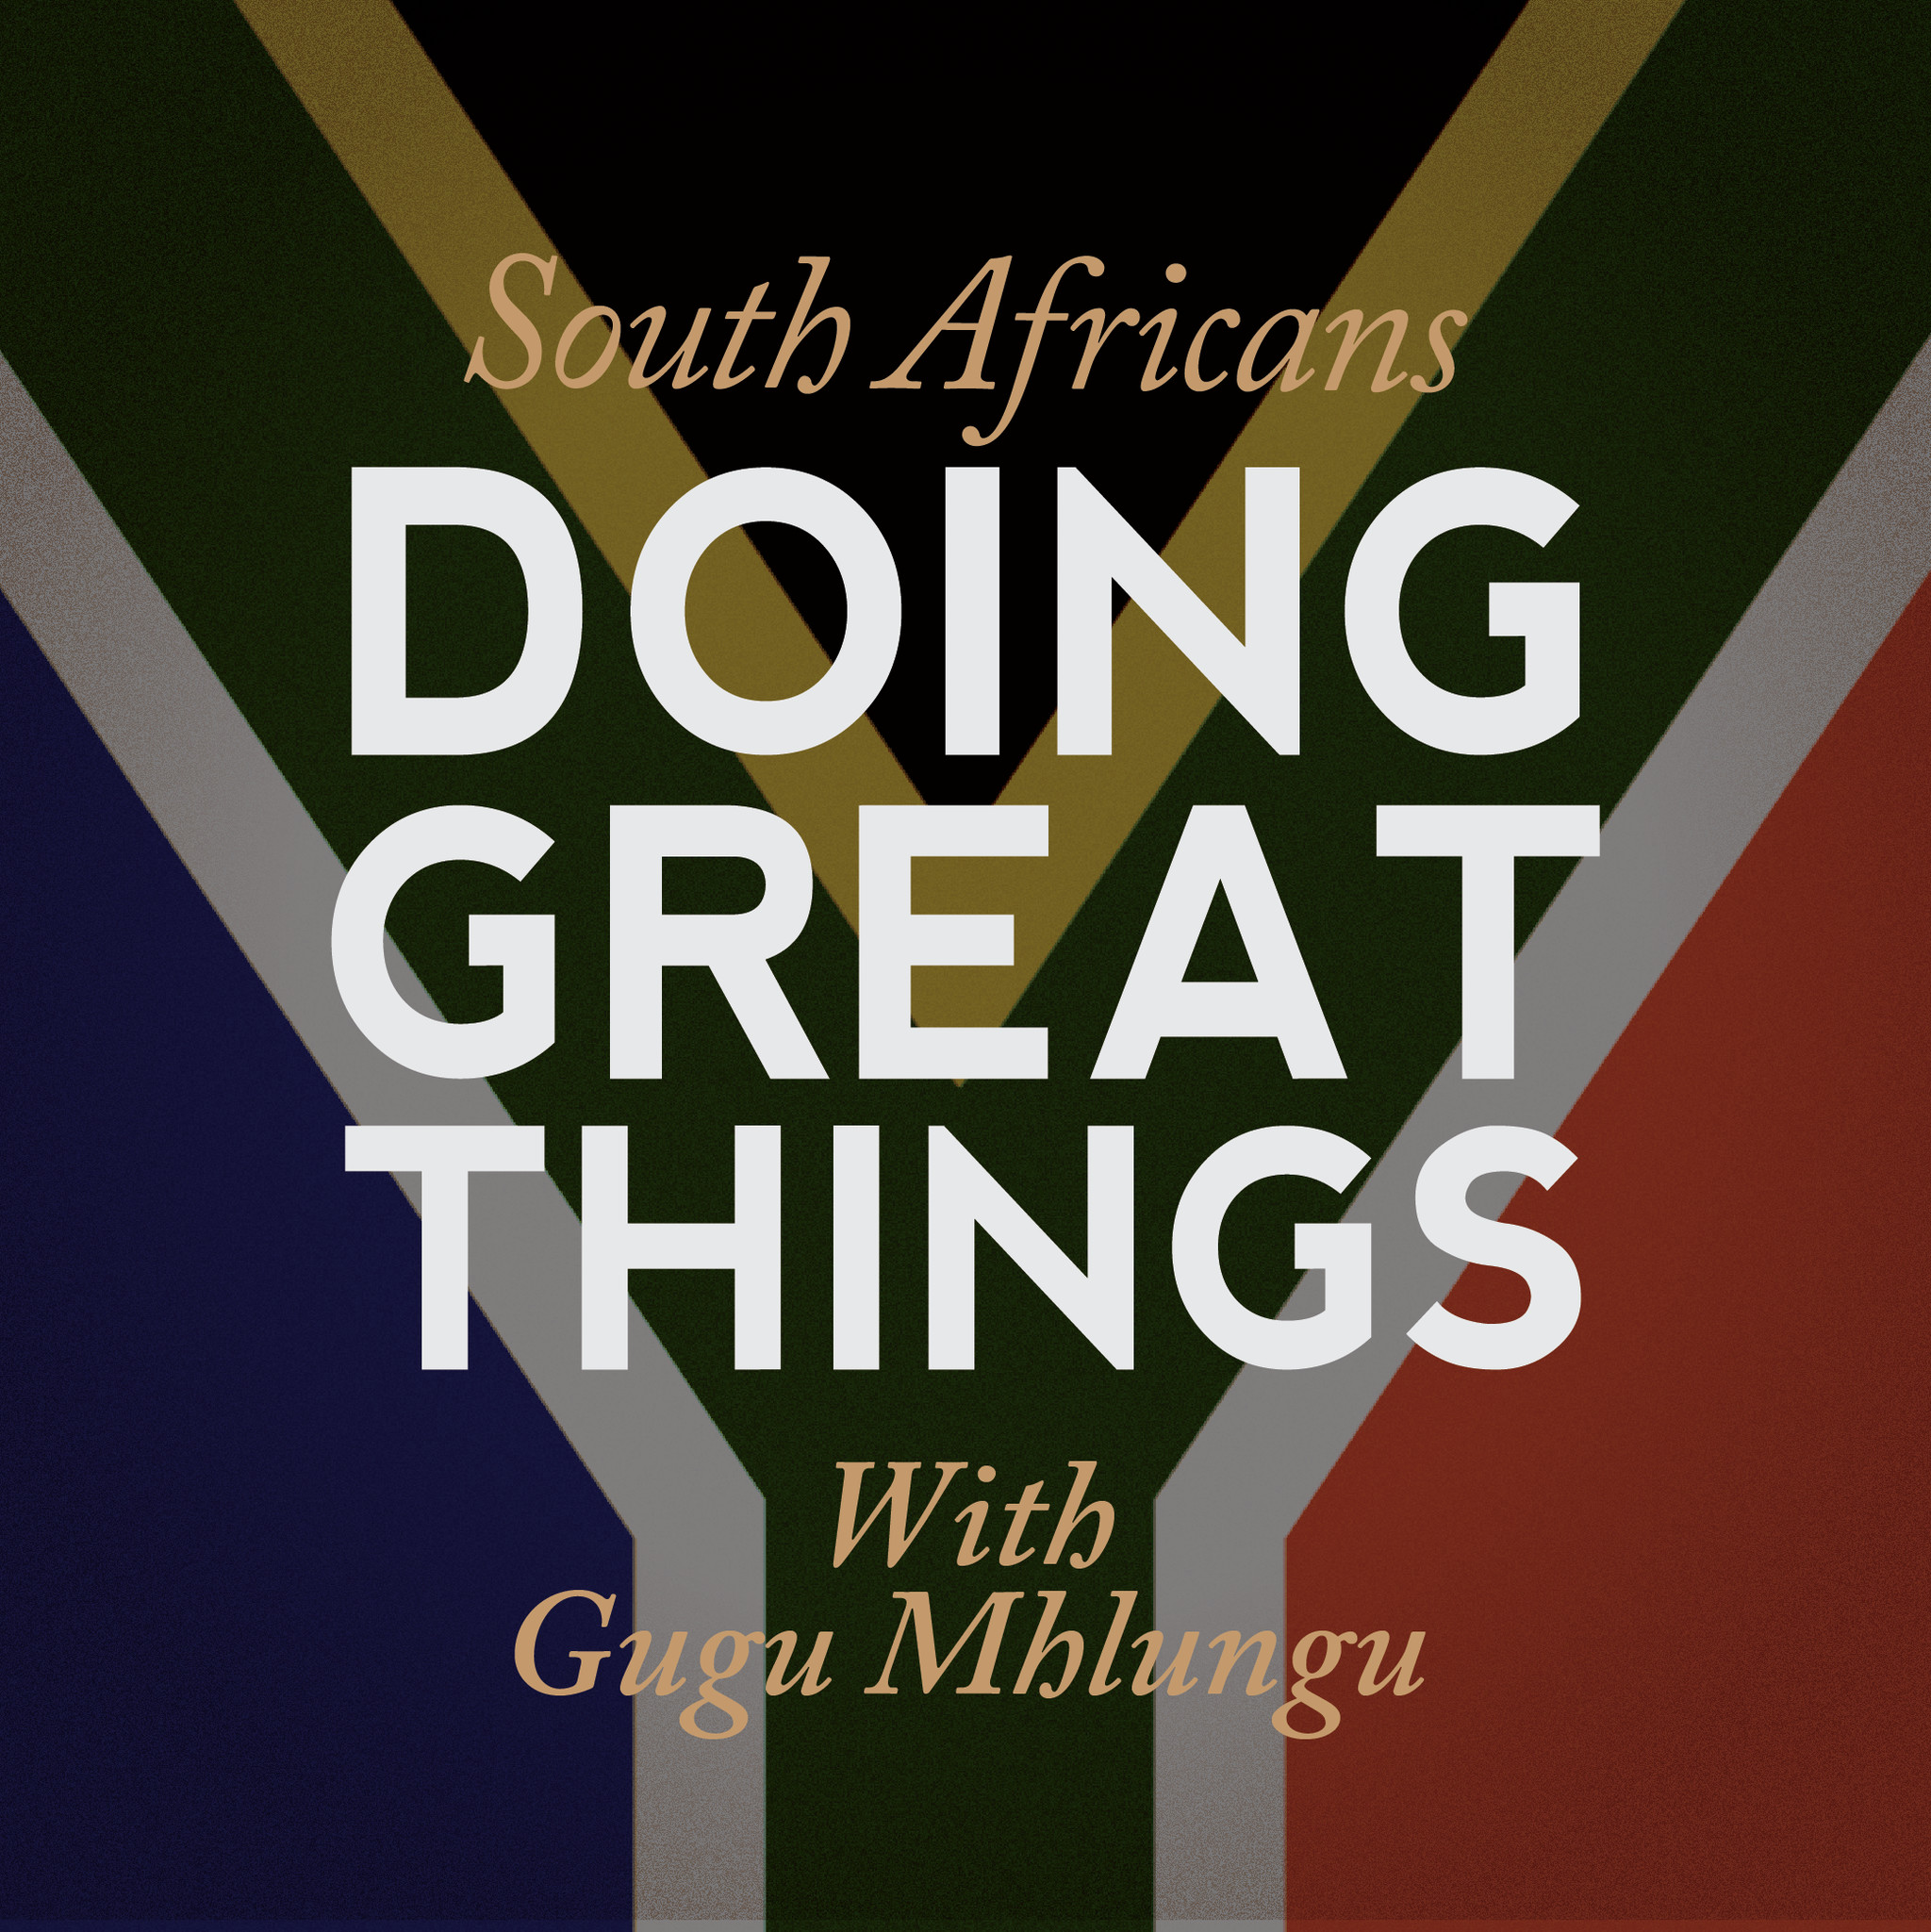 South Africans Doing Great Things